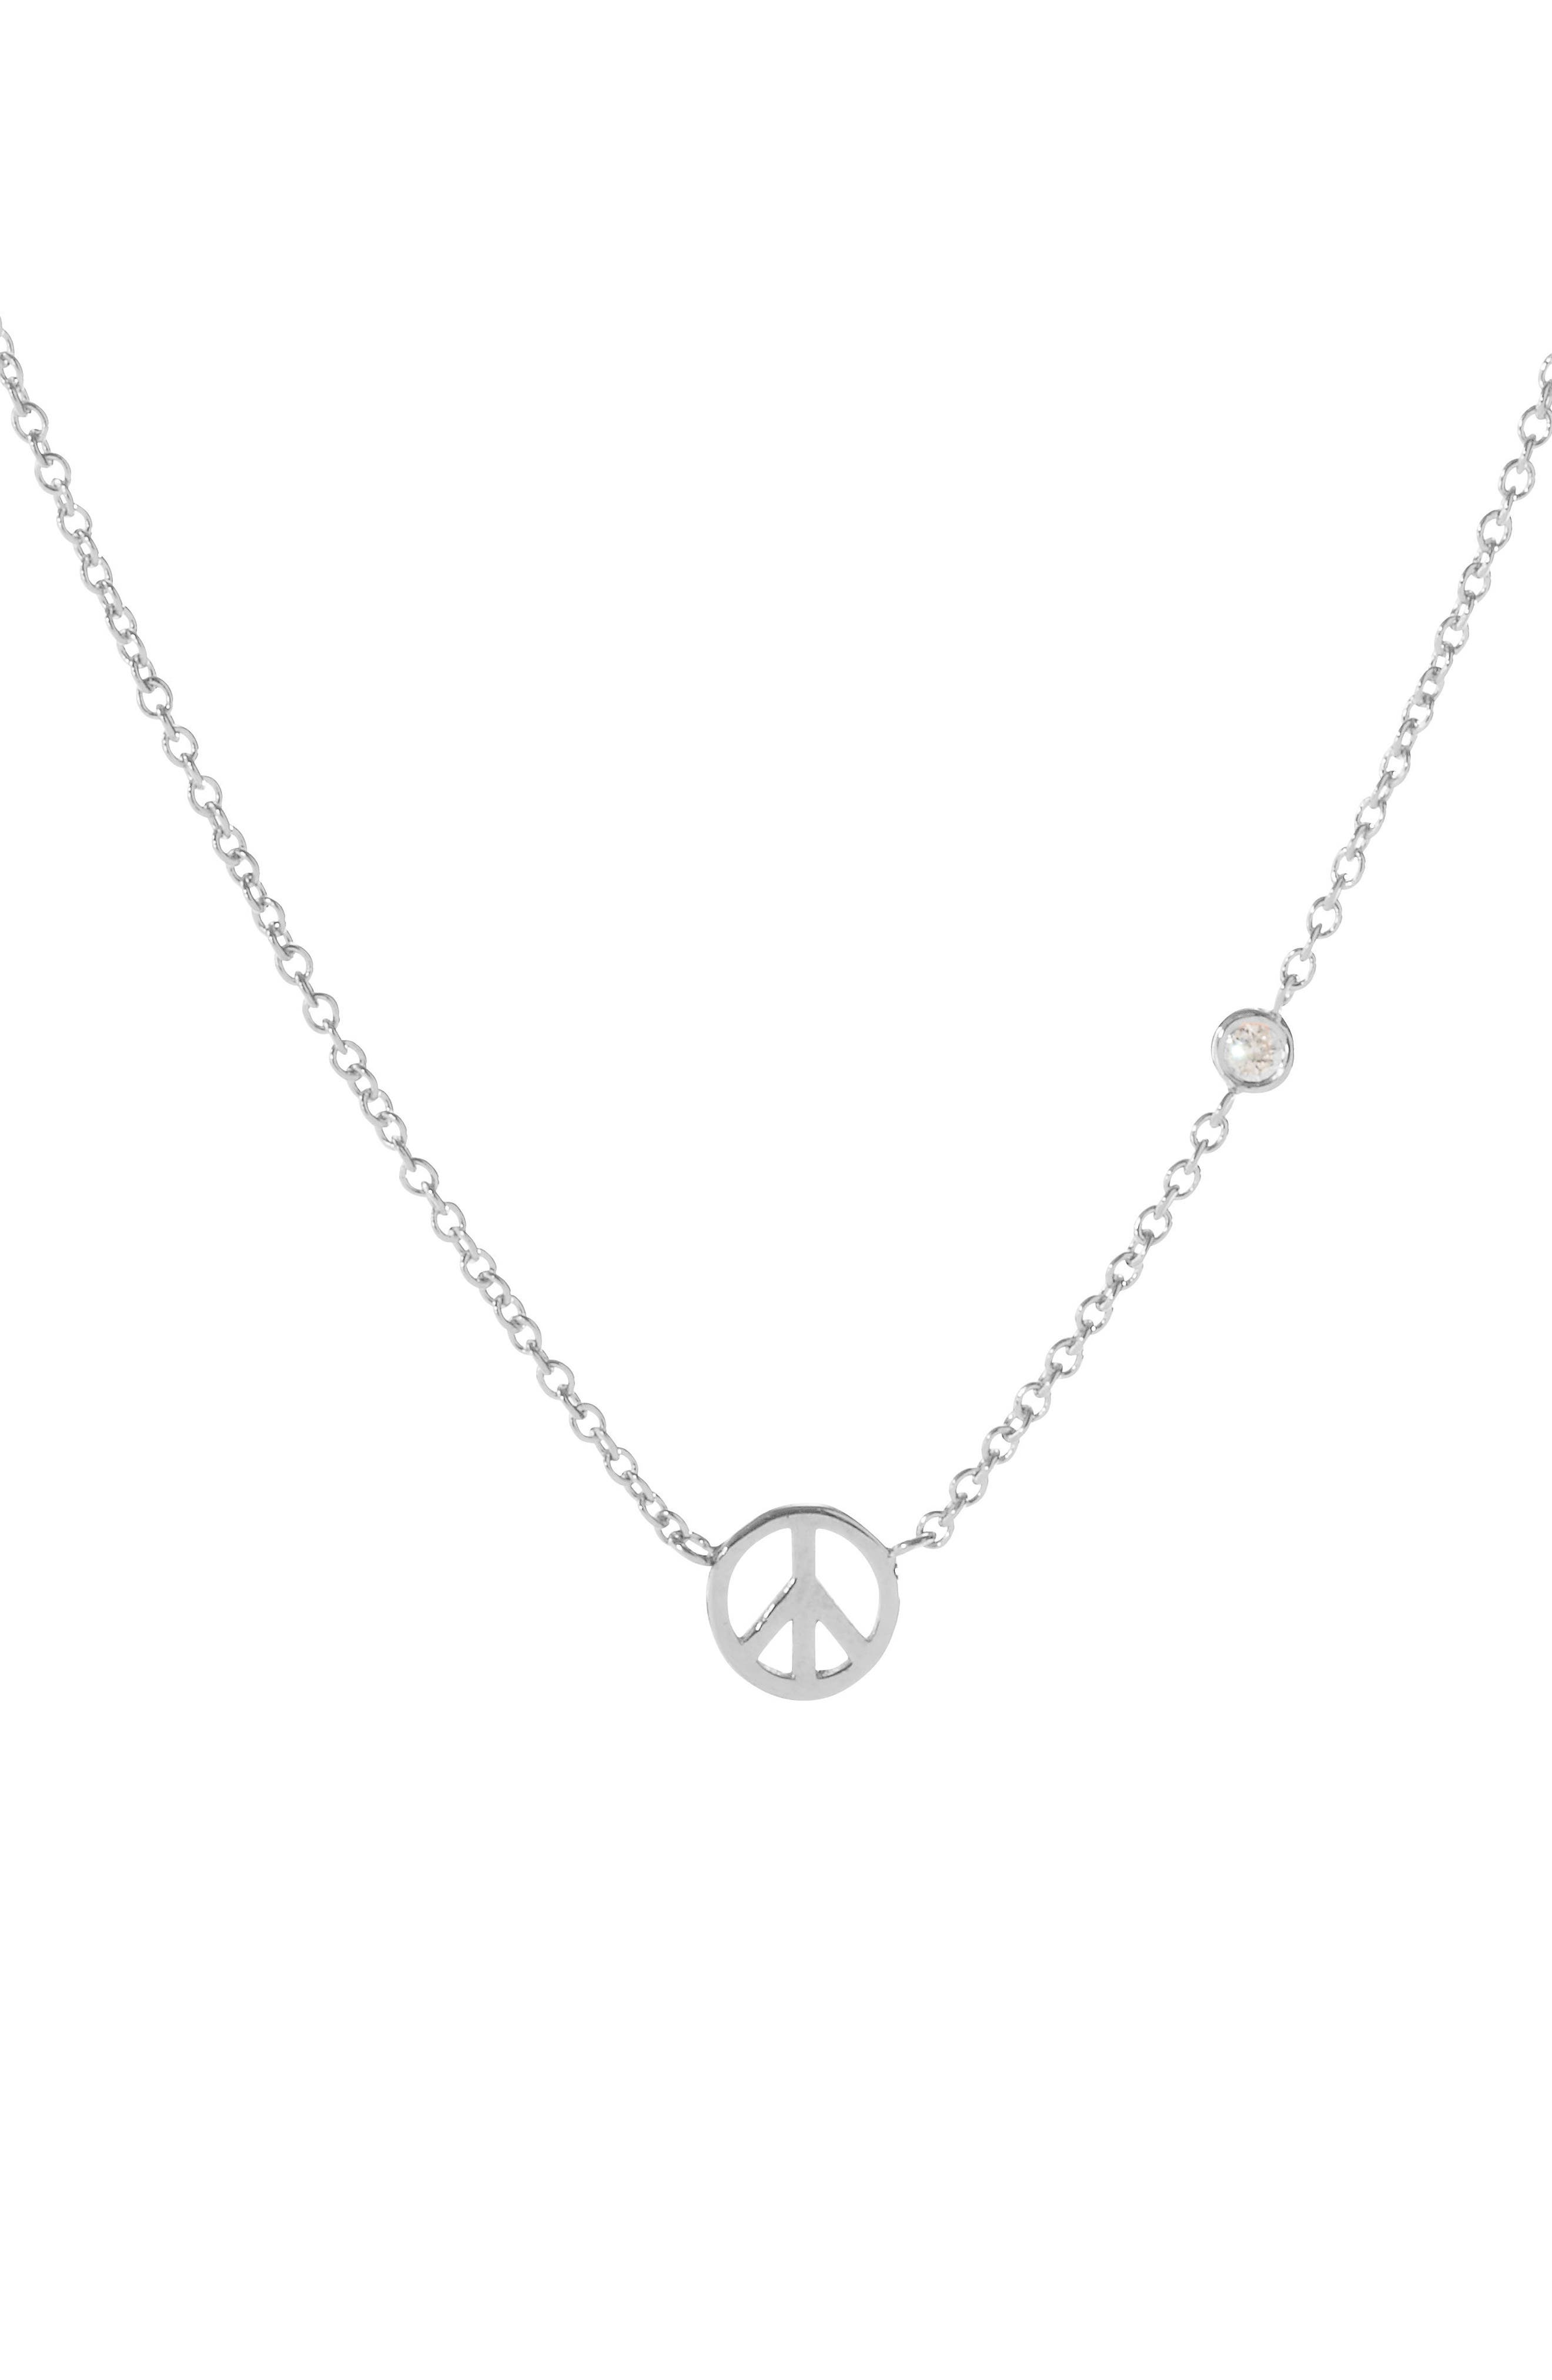 Peace Sign Necklace,                         Main,                         color, Silver